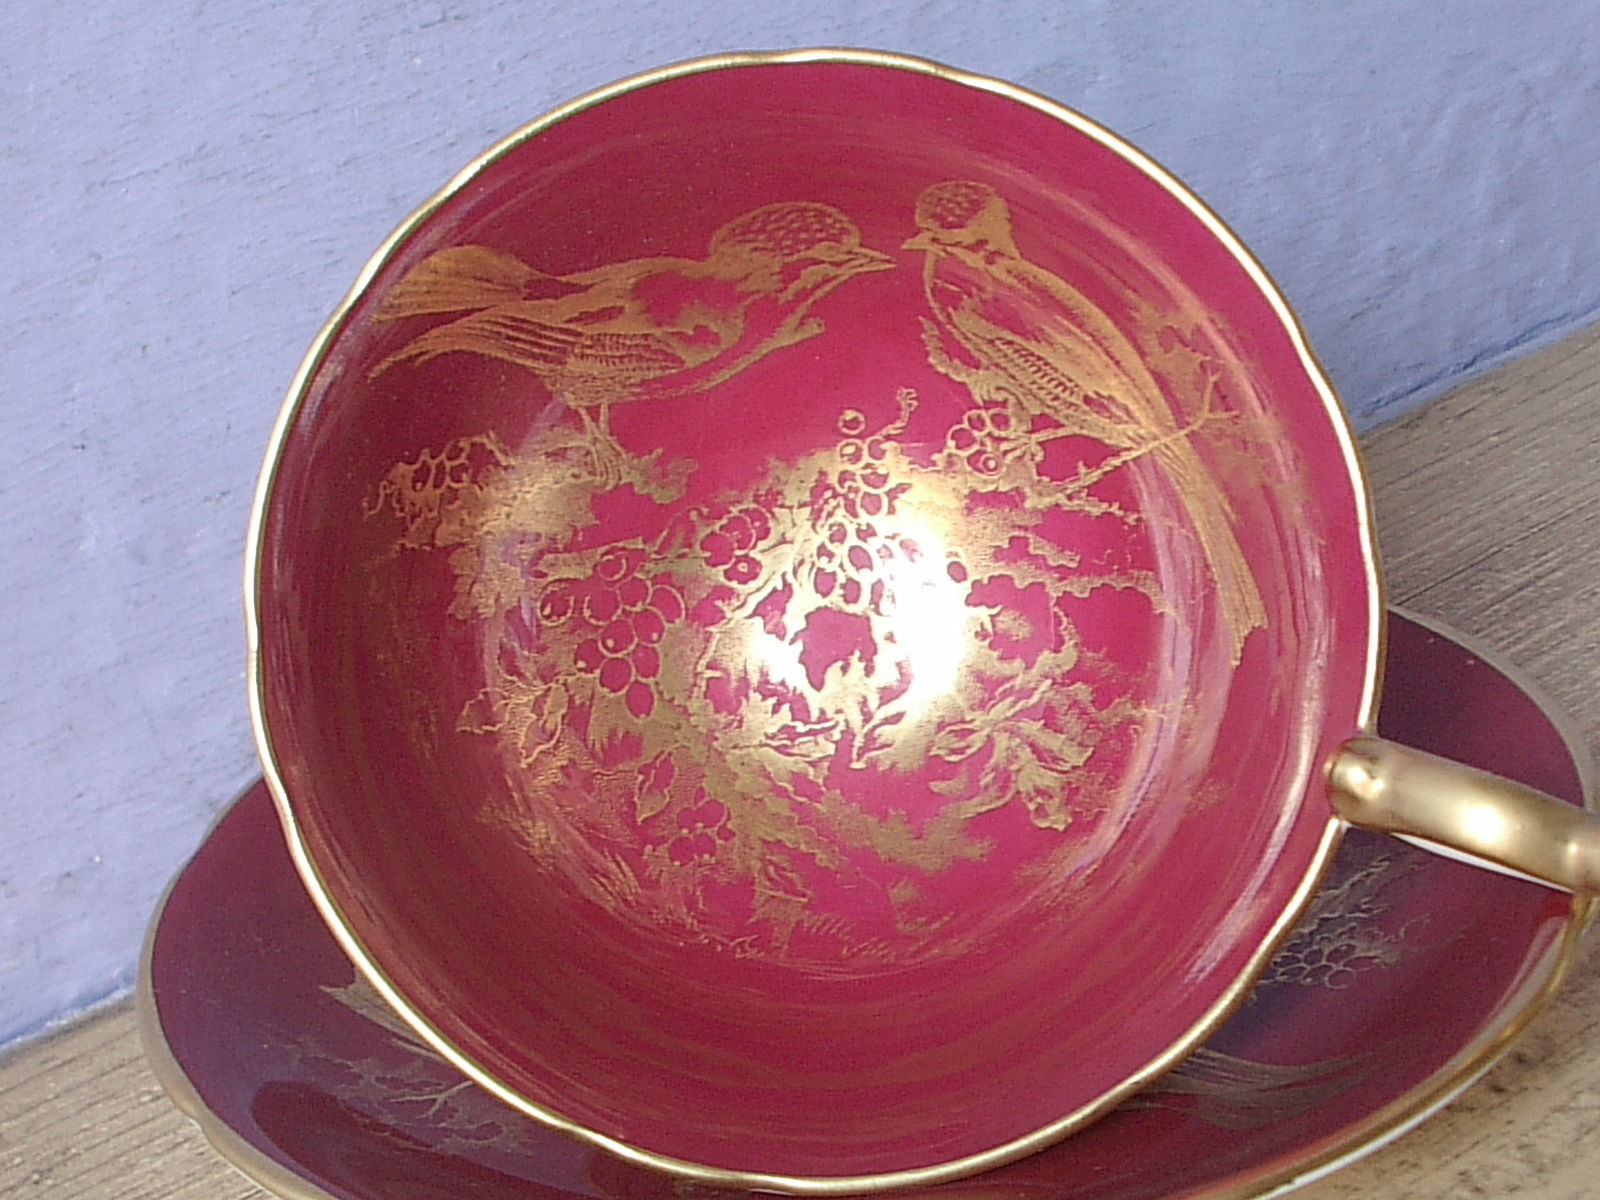 RARE Vintage 1950's Aynsley English bone china red and gold birds tea cup teacup